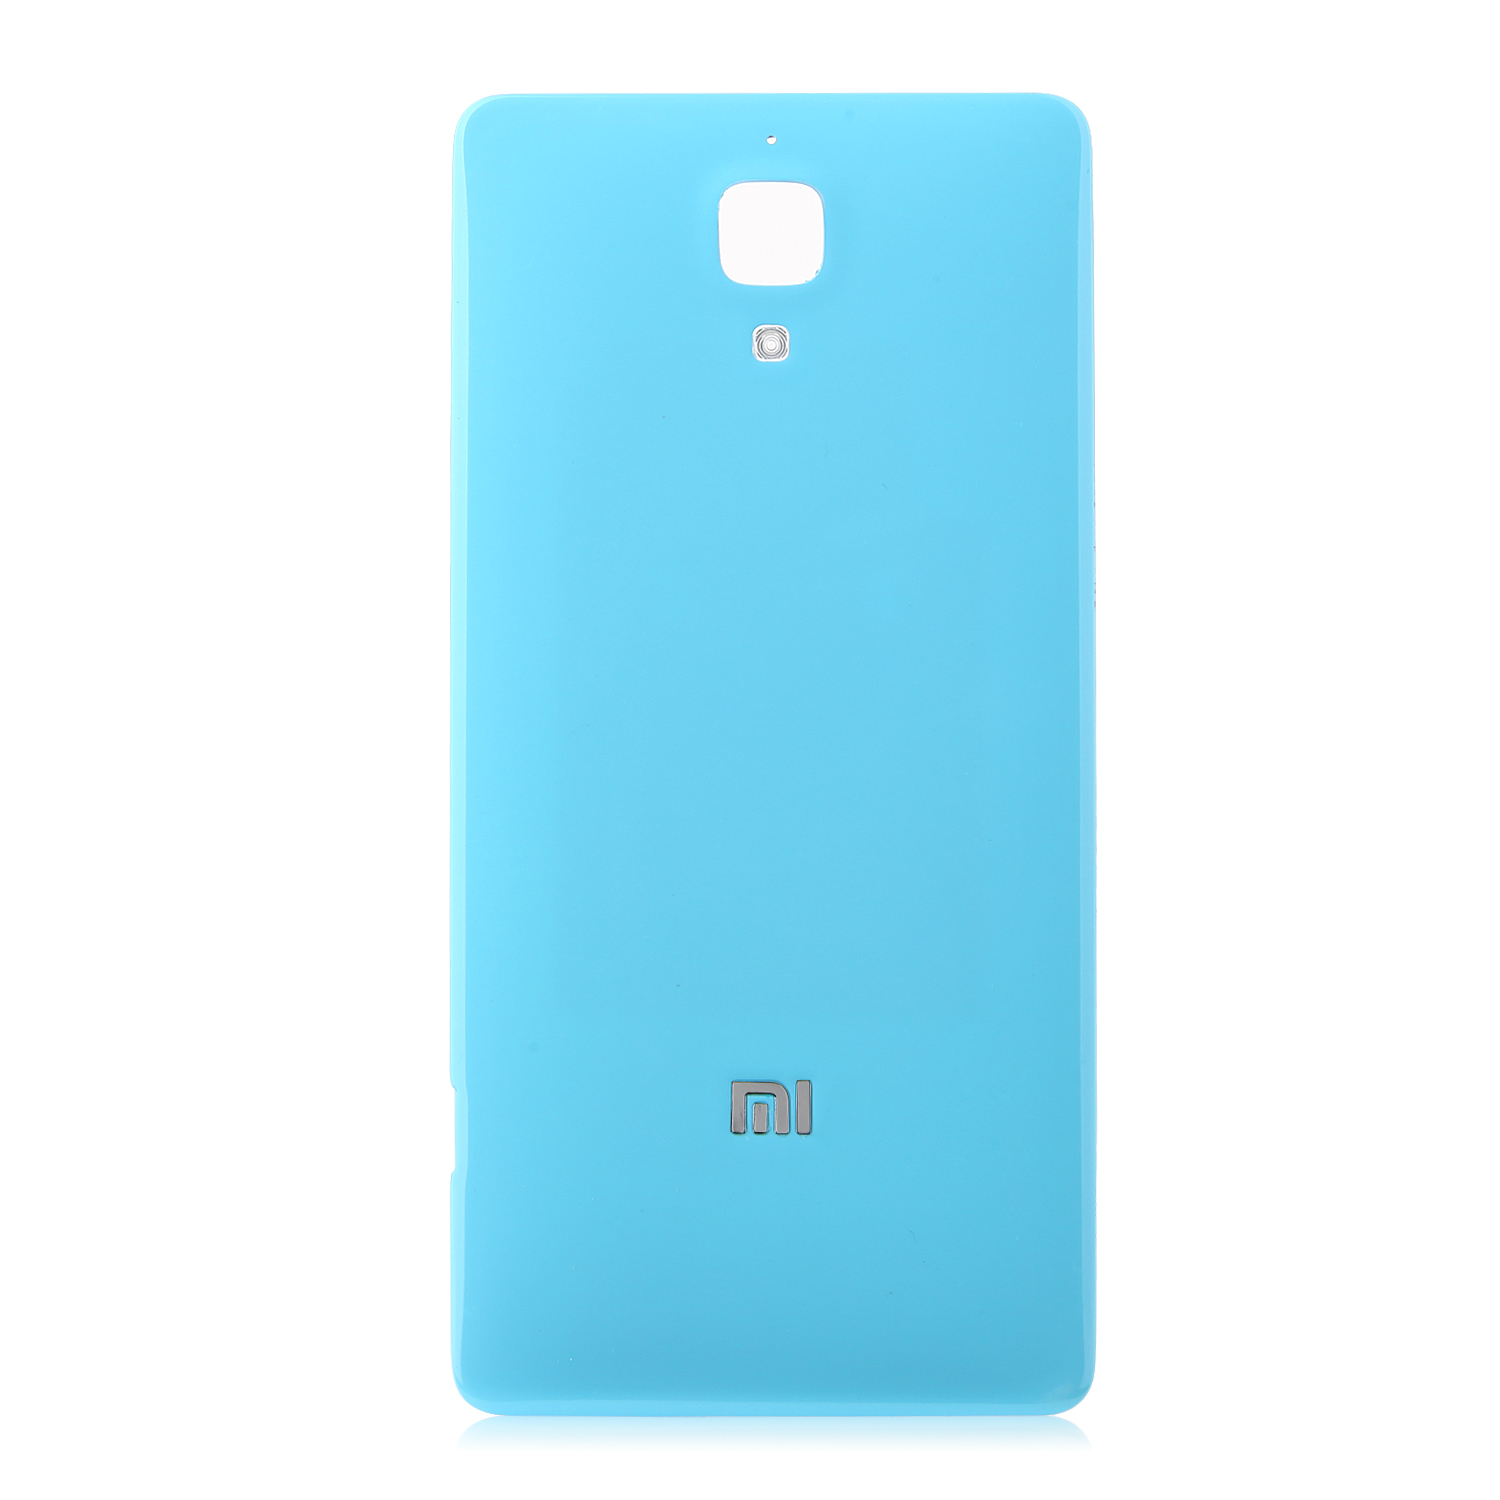 Replacement Battery Cover Back Case for XIAOMI MI4 Smartphone Blue